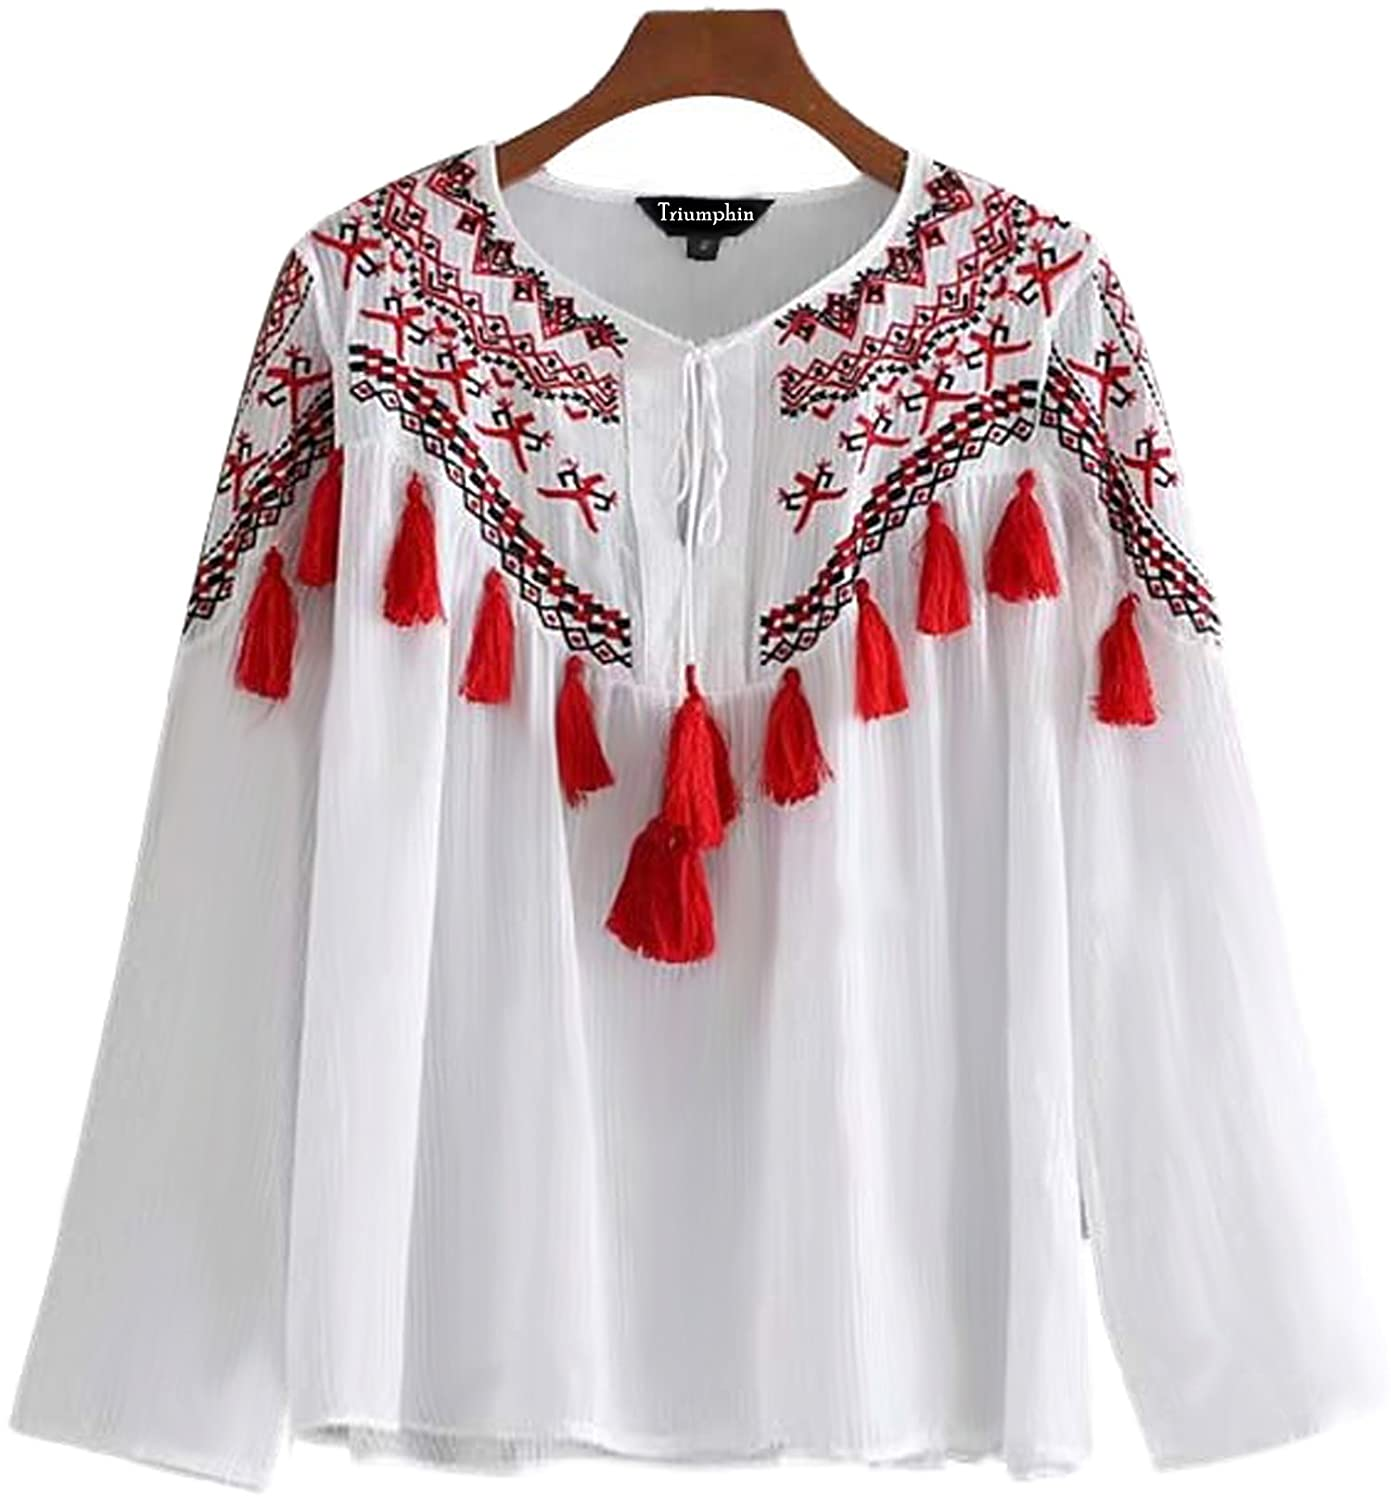 cb132270e23311 triumphin white women girls boat neck embroidered rayon cotton top for  dailywear stylish casual and western